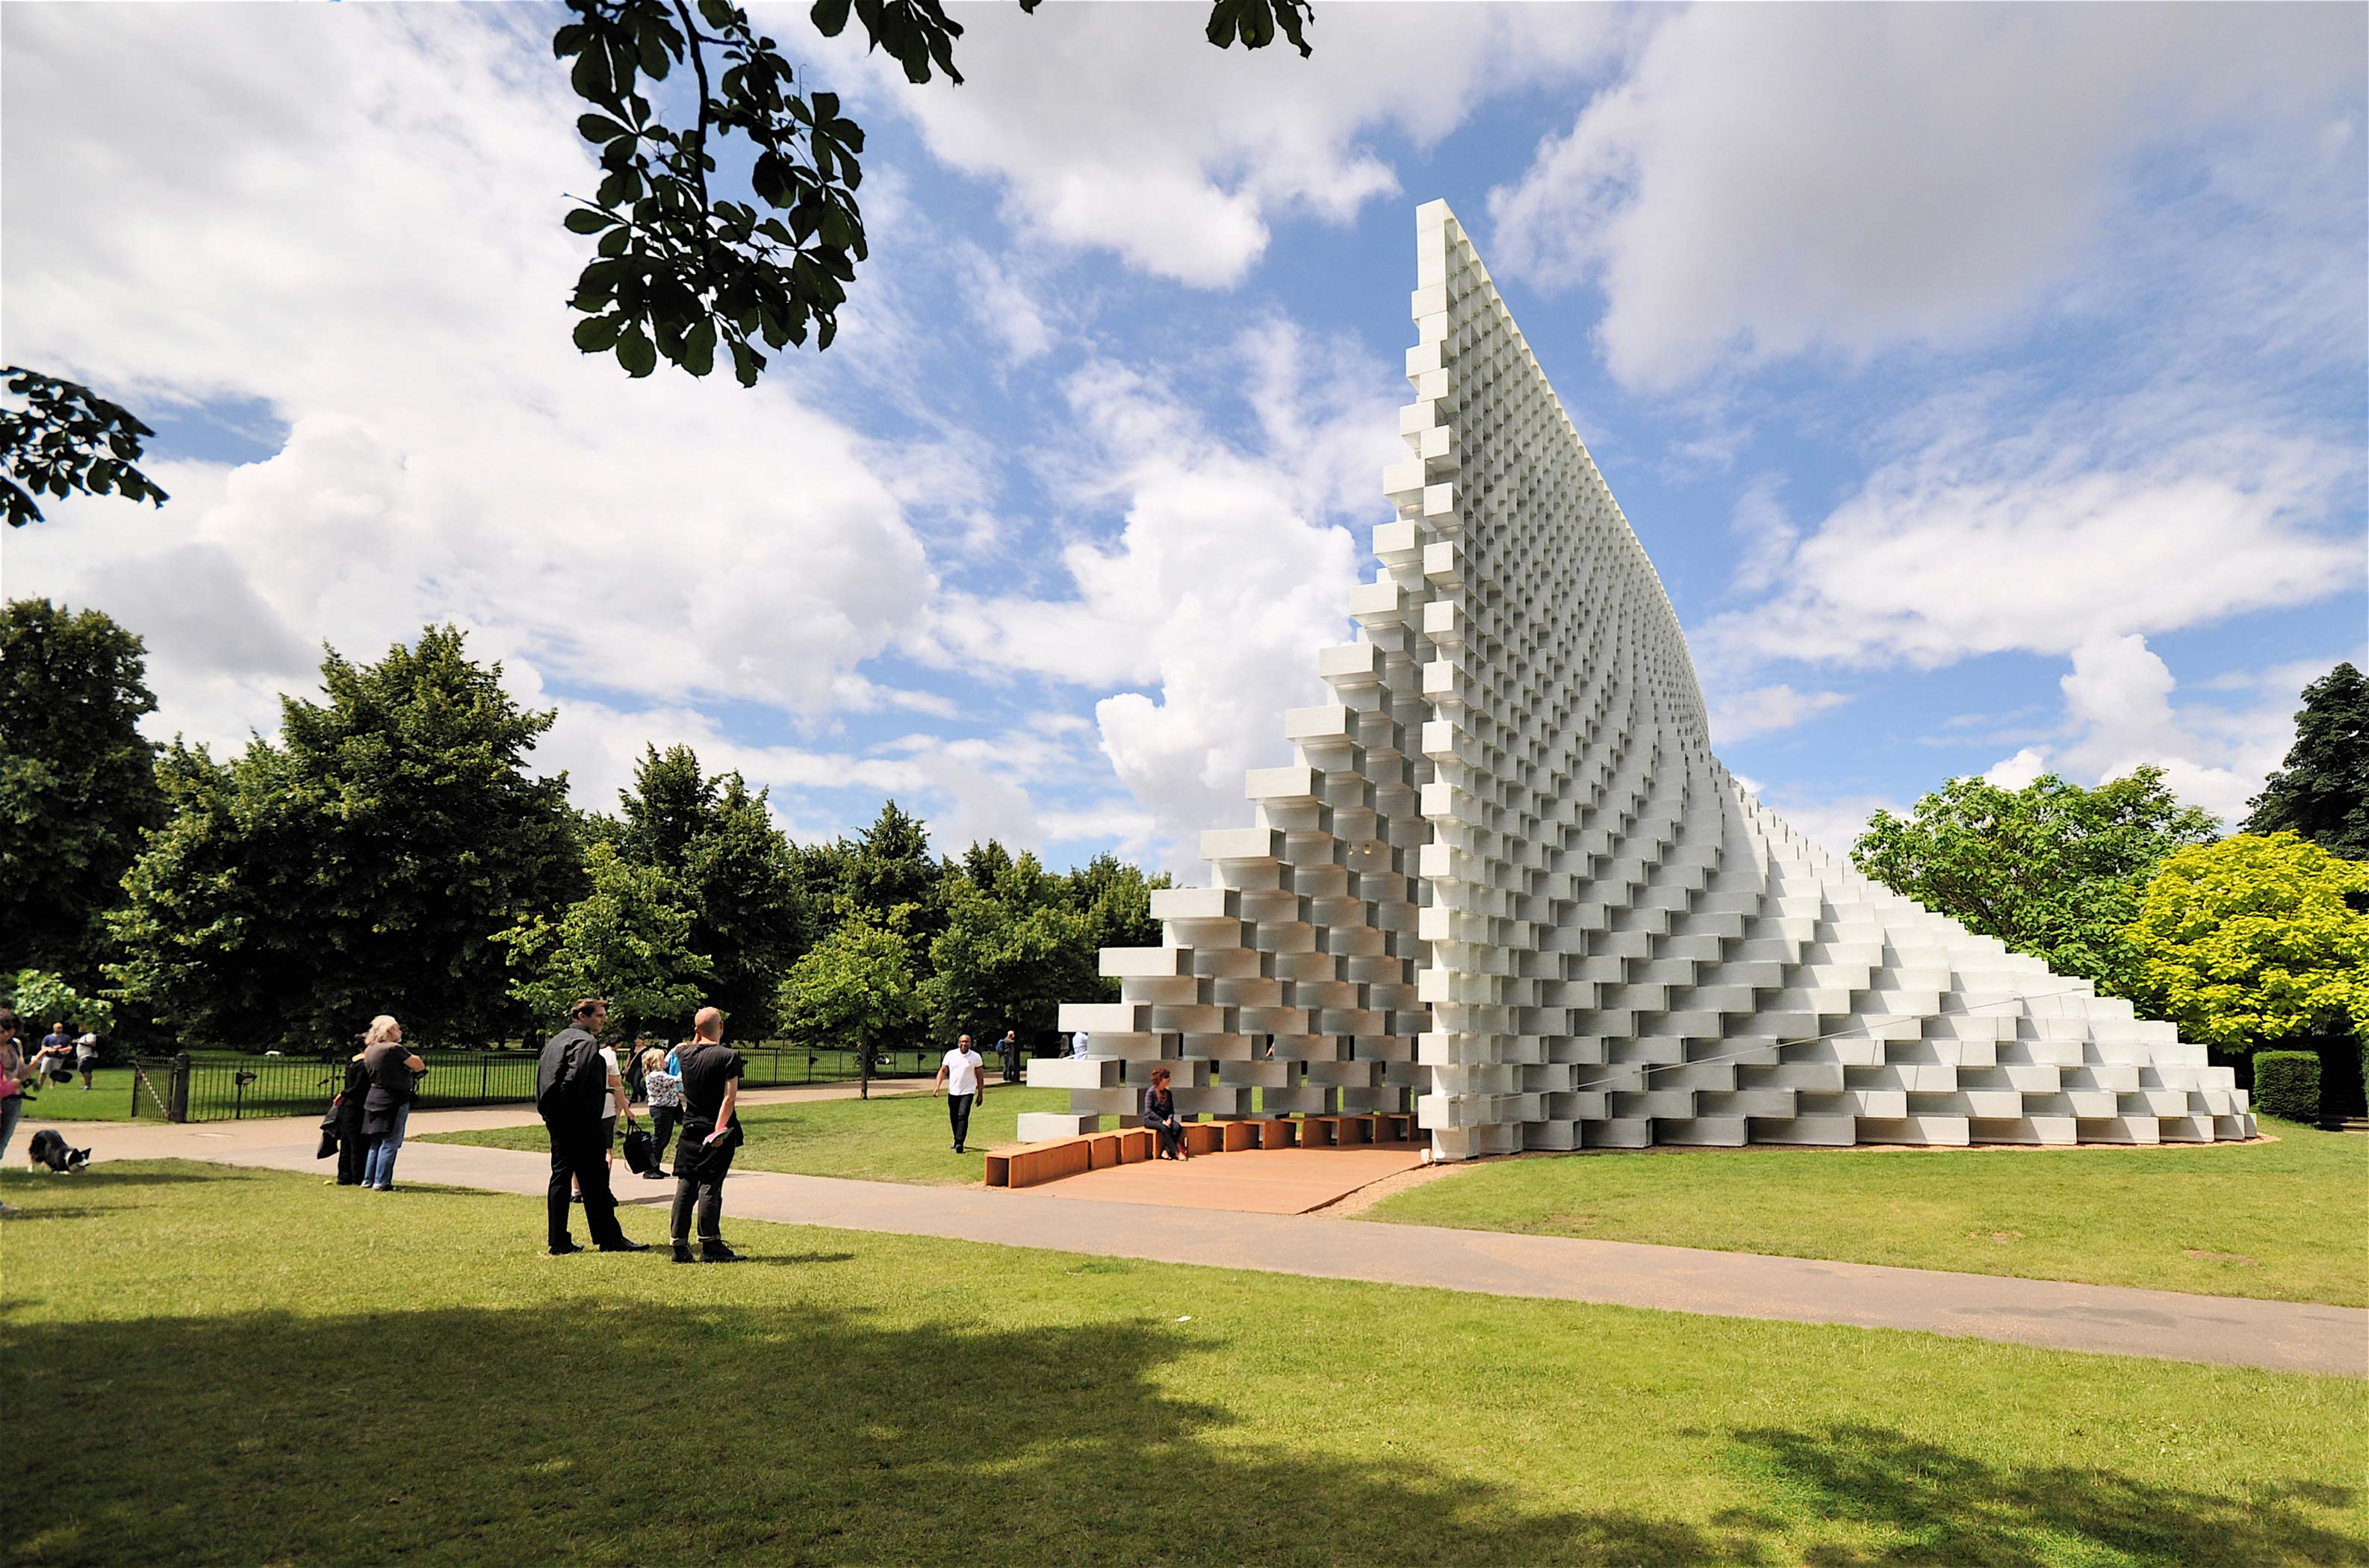 ASTOUND_SerpentinePavilion_Stock_(2)